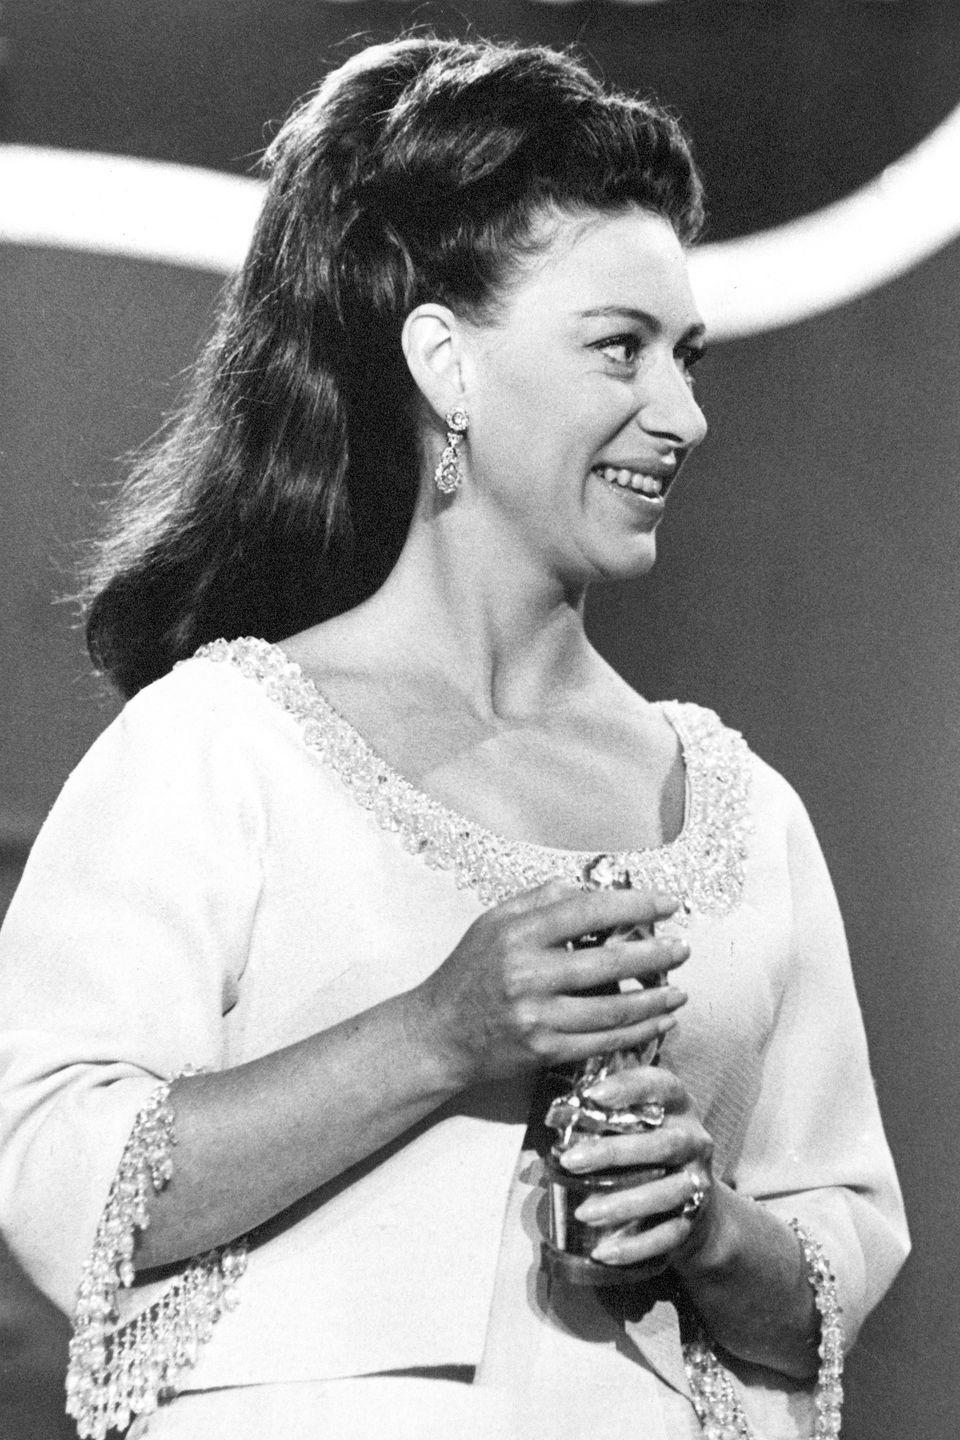 <p>HRH presented a Tony Award at the Mark Hellinger Theatre in New York city in 1969.</p>